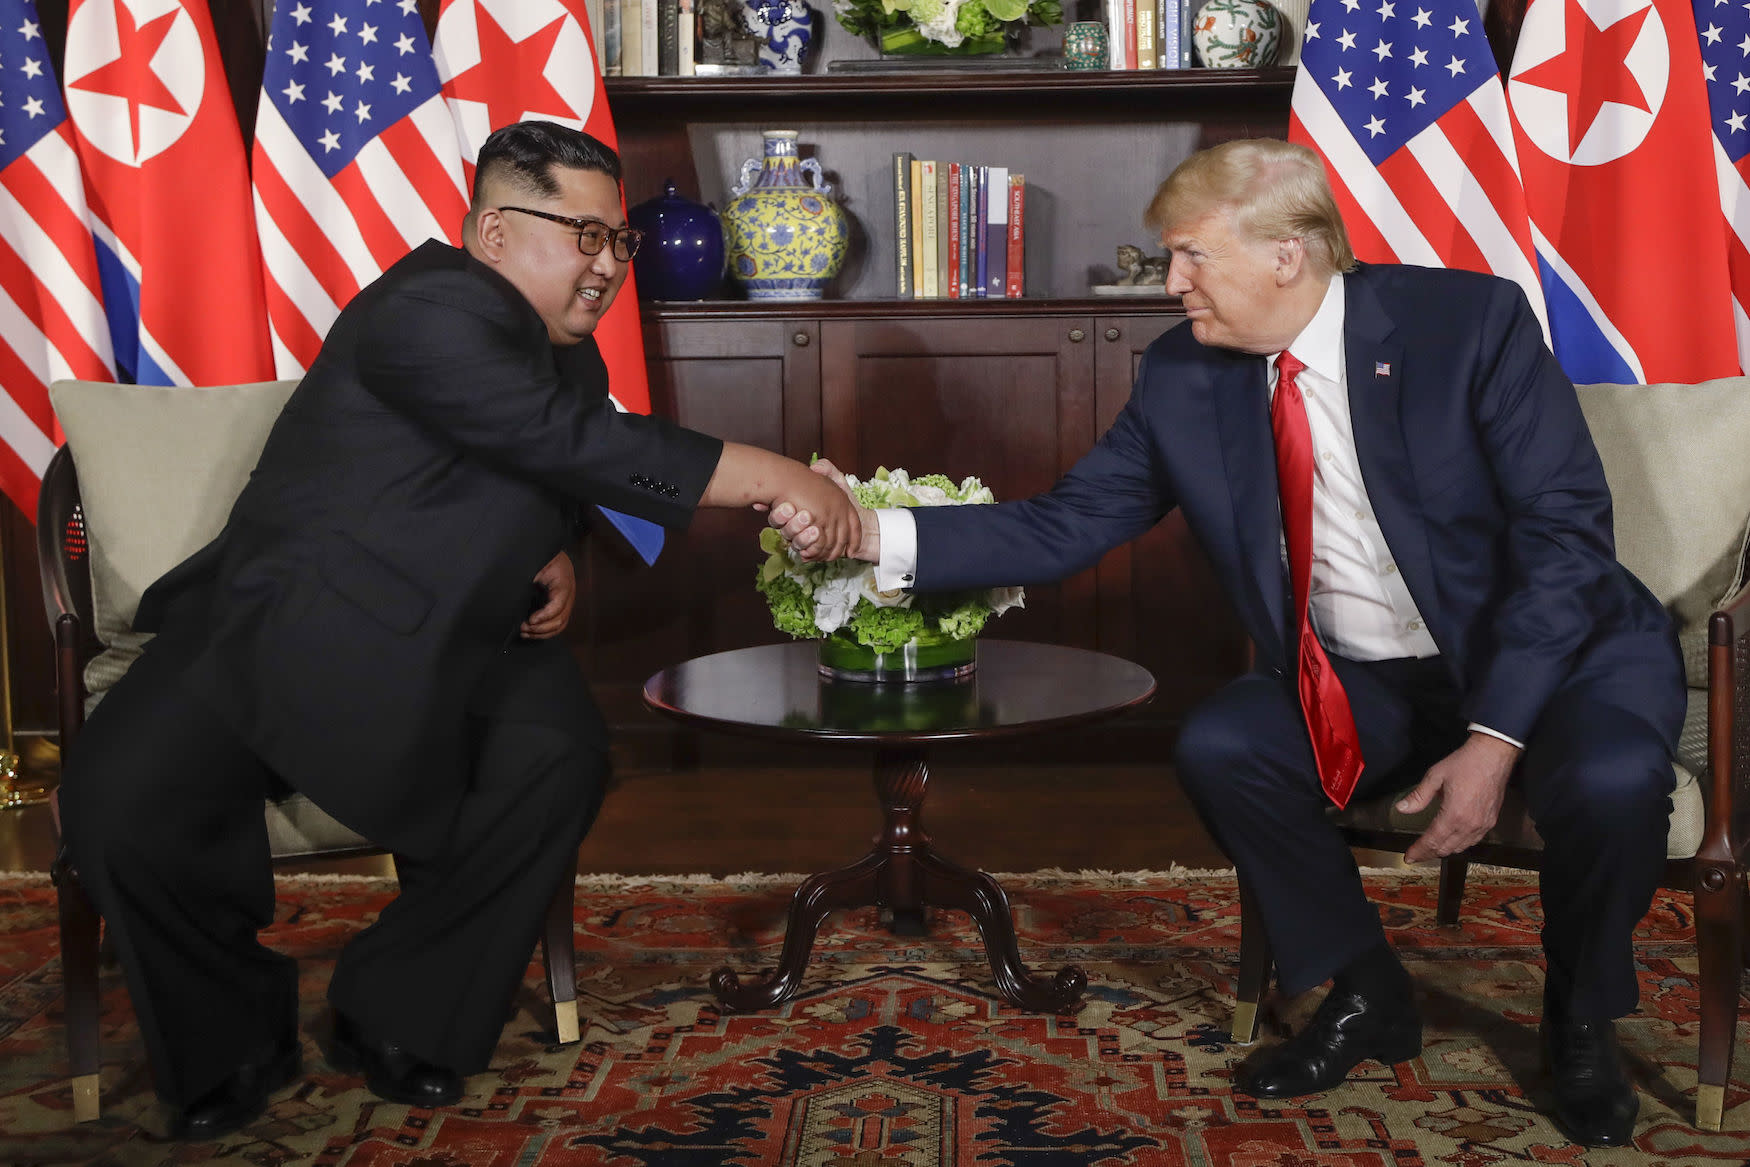 Historic moment: Kim Jong-un and Donald Trump shake hands in Singapore during their landmark meeting. (AP)